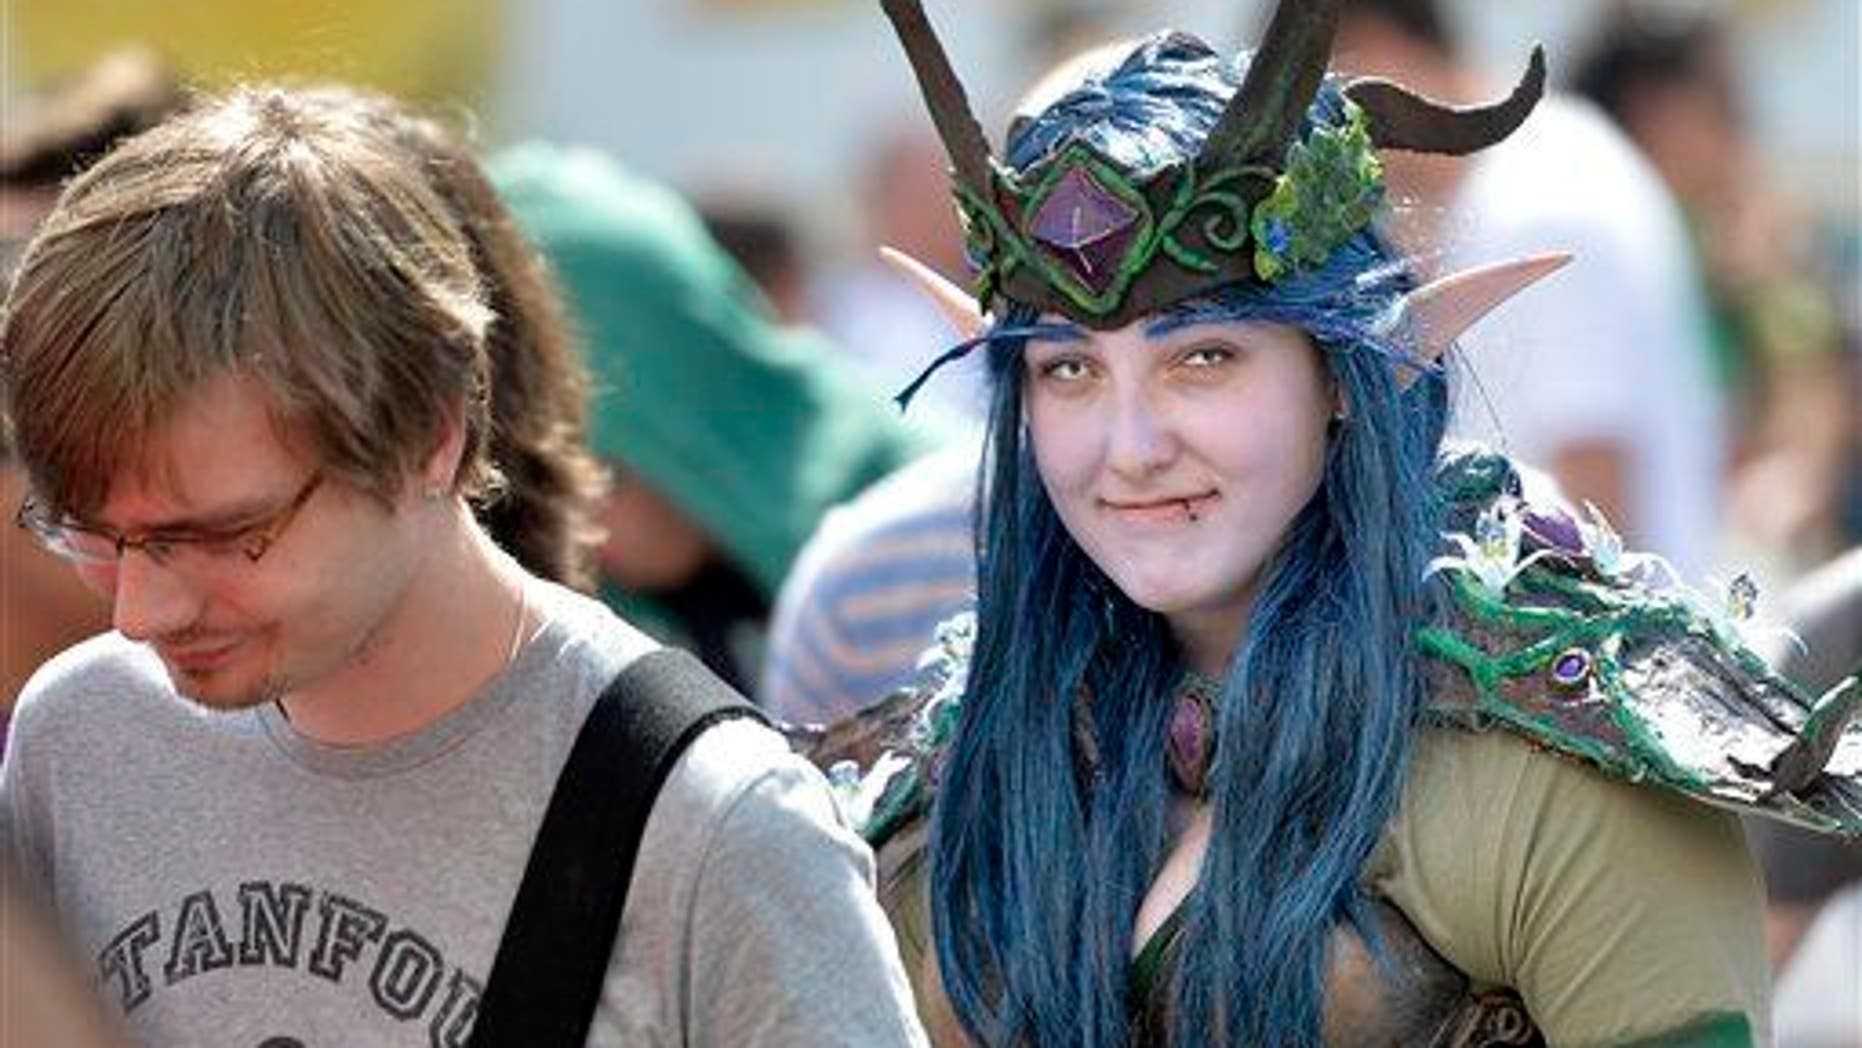 A girl in a fantasy dress  arrives at gaming fair in Cologne, Germany, in this file photo.